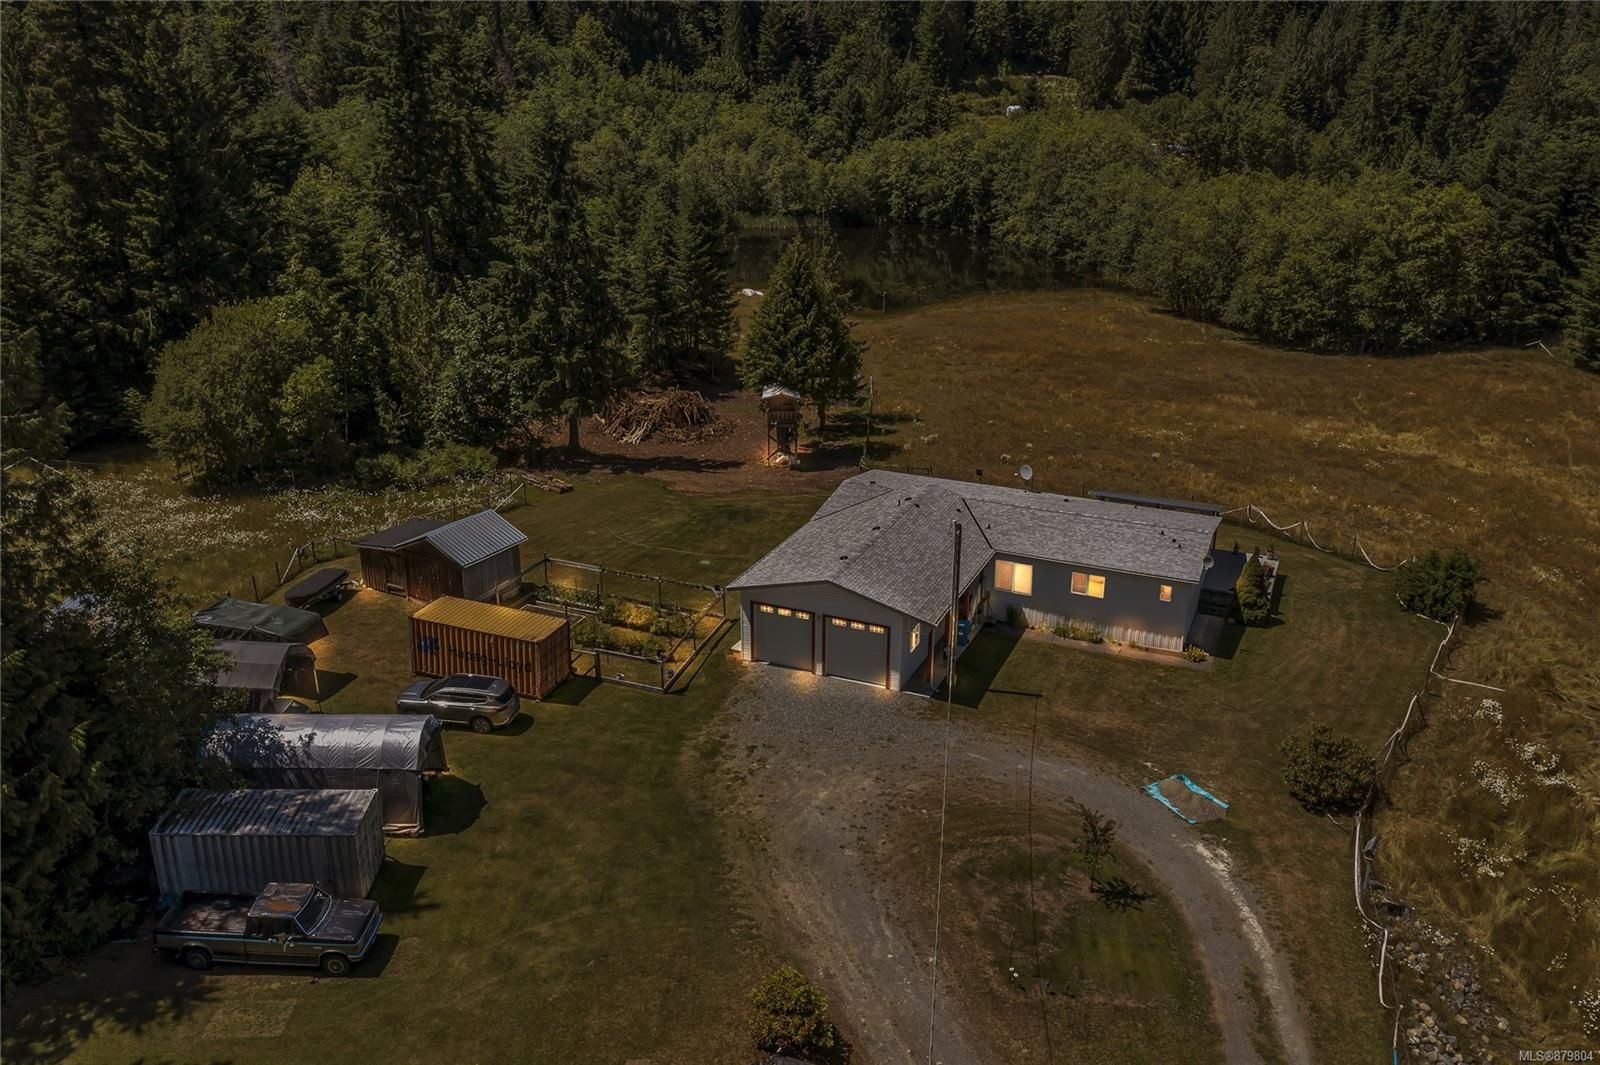 Photo 8: Photos: 3596 Riverside Rd in : ML Cobble Hill Manufactured Home for sale (Malahat & Area)  : MLS®# 879804